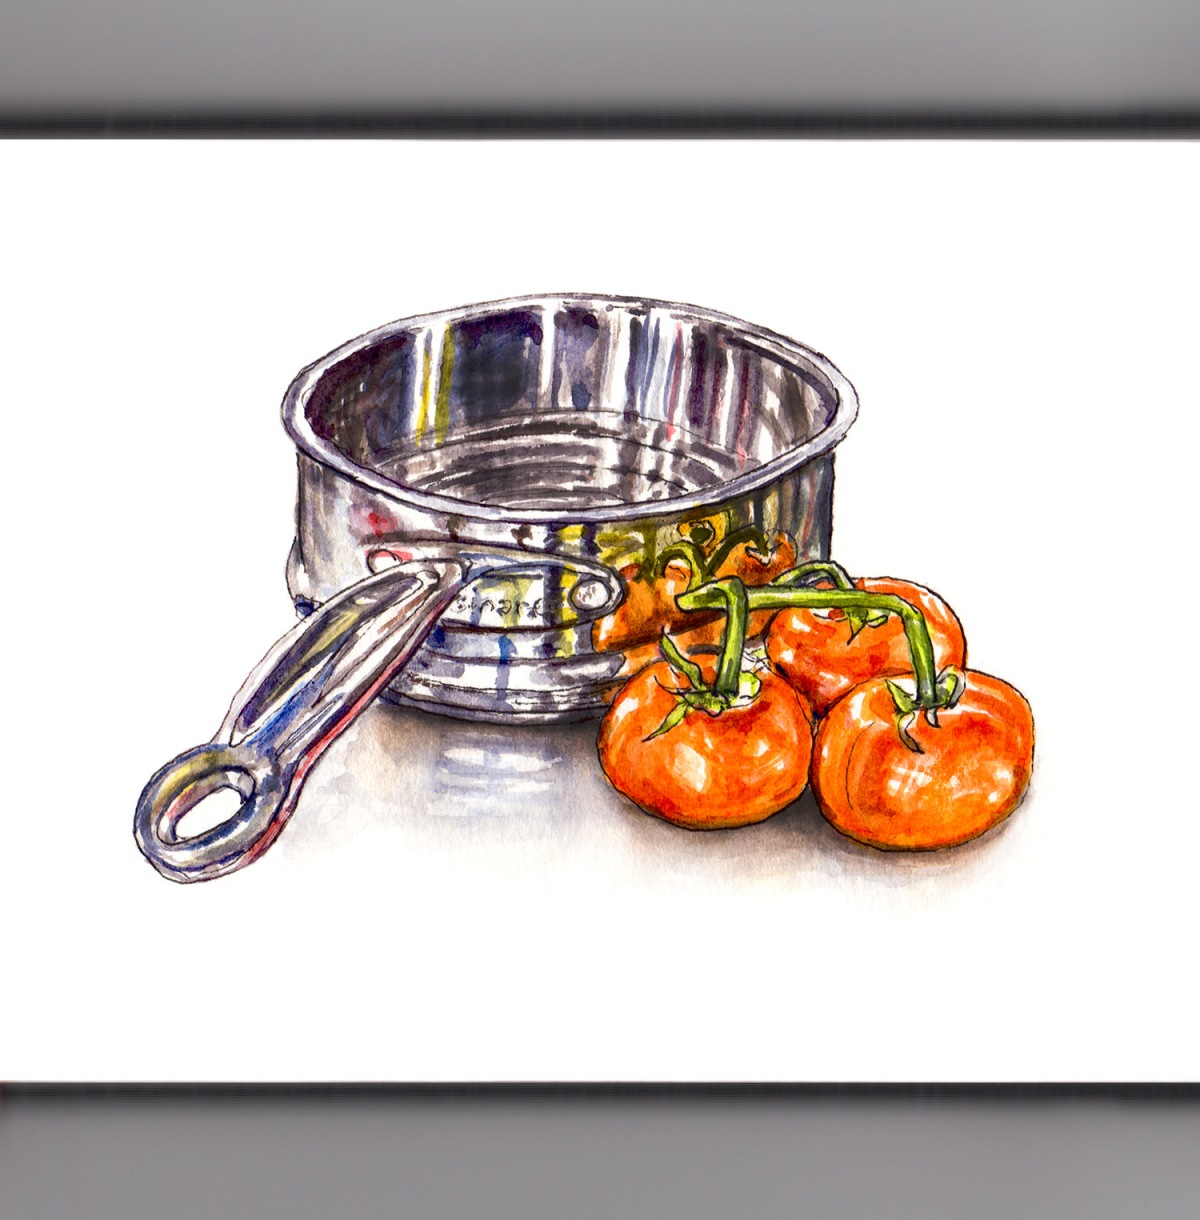 Day 7 - #WorldWatercolorGroup - Everything Sparkles - Metal Colander With Tomatoes Watercolor - #doodlewash